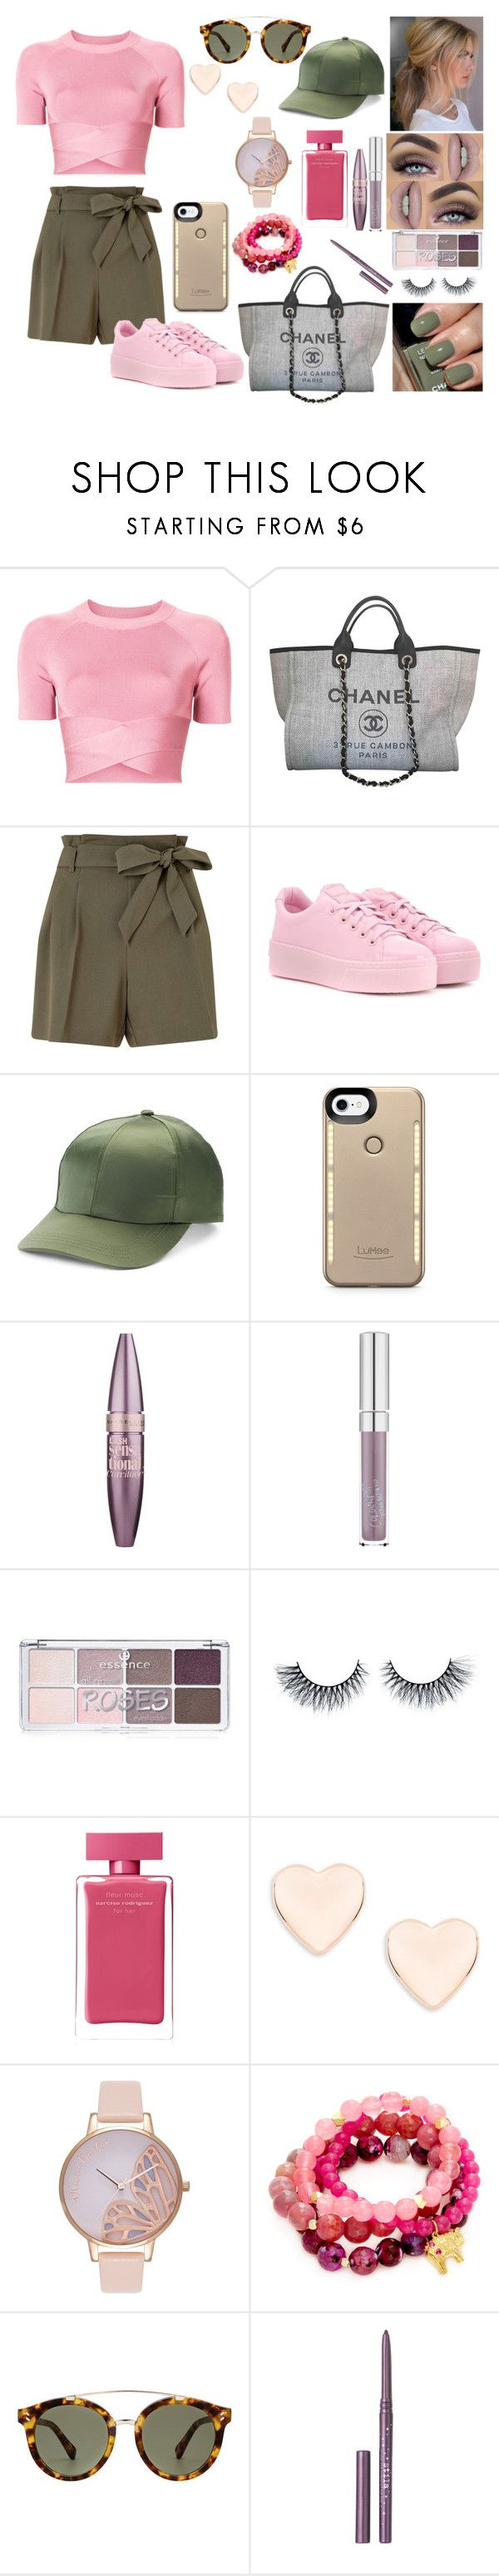 """""""Pink"""" by nicks-1 on Polyvore featuring moda, T By Alexander Wang, Chanel, Miss Selfridge, Kenzo, Mudd, LuMee, Maybelline, Forever 21 e Narciso Rodriguez"""